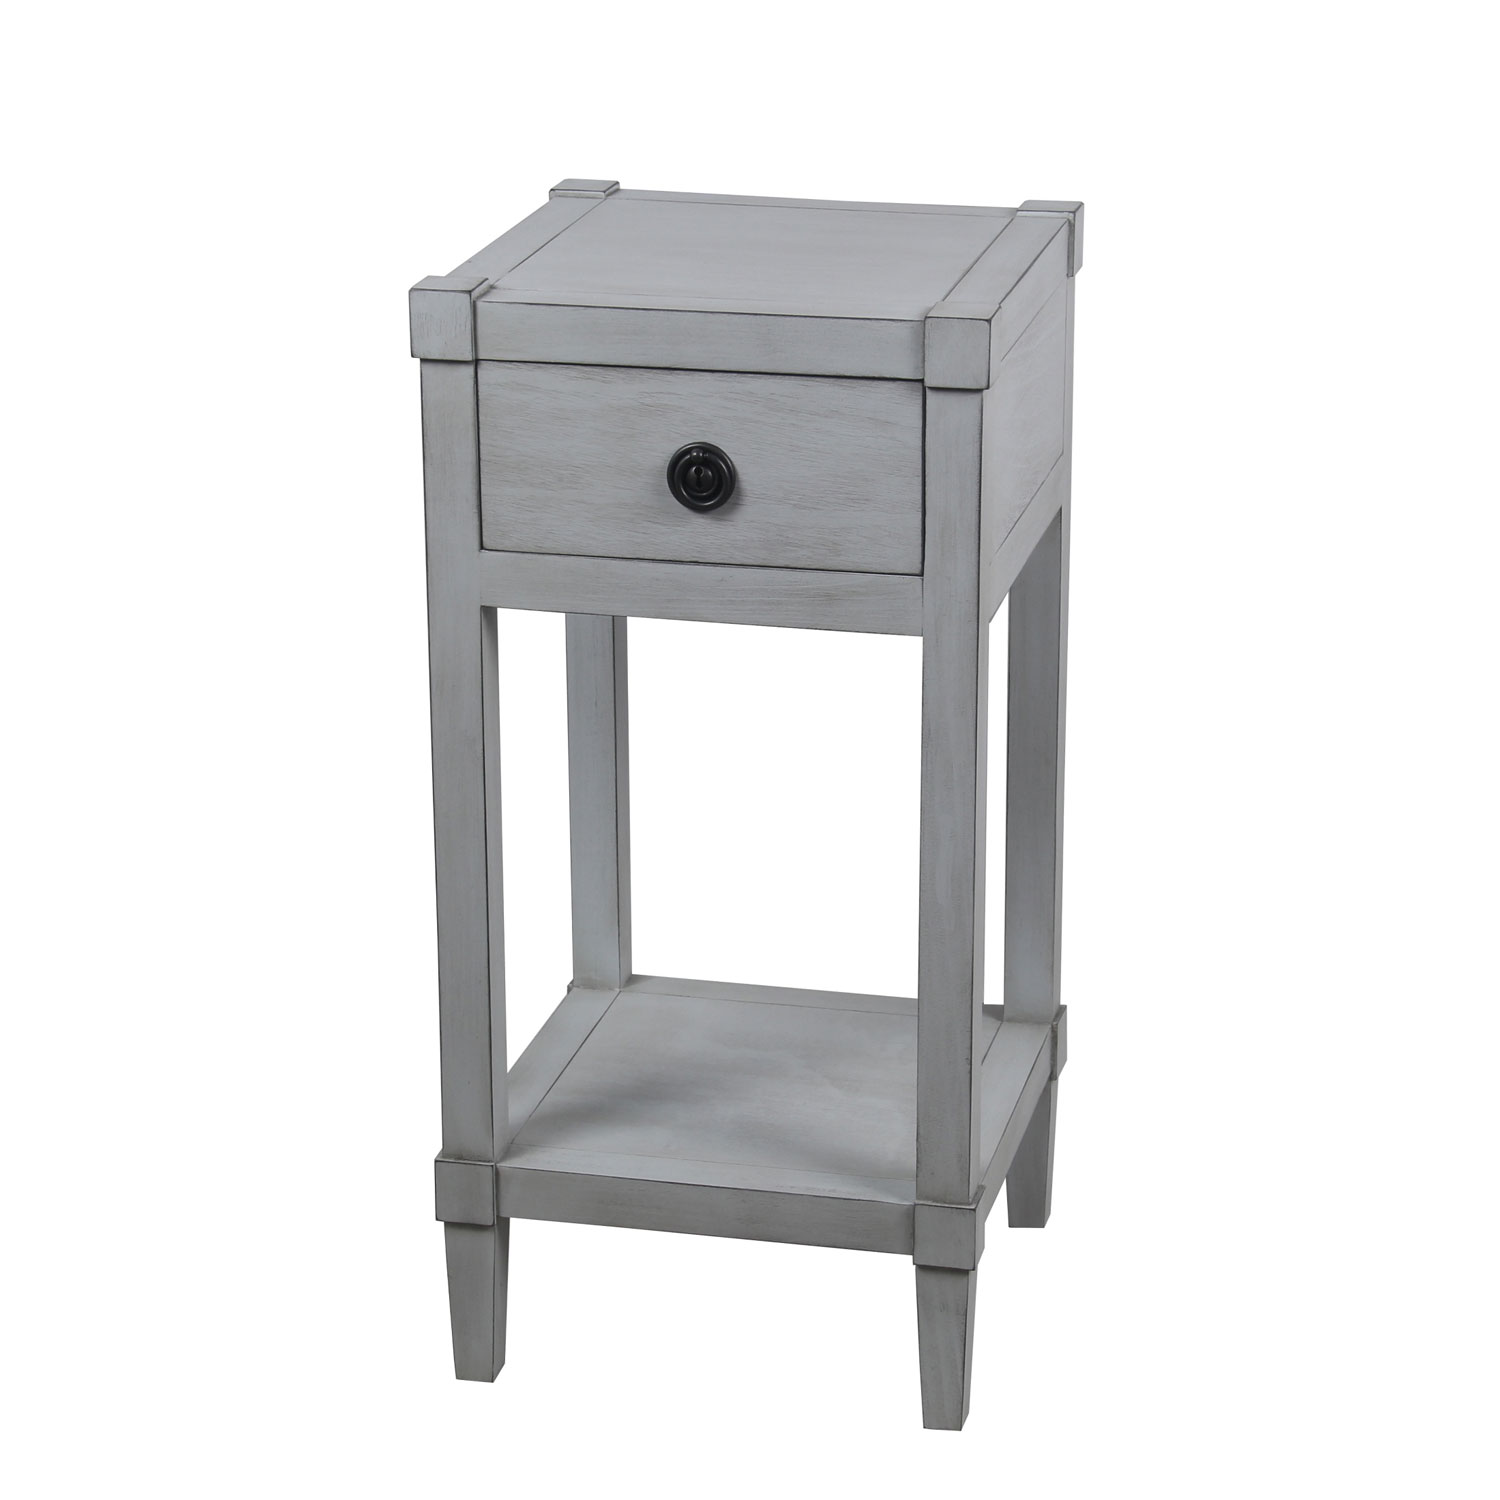 privilege smoke ash one drawer accent table bellacor gray hover zoom narrow hallway console cabinet round cocktail cloths concrete top dining room red wood quilted runners bar